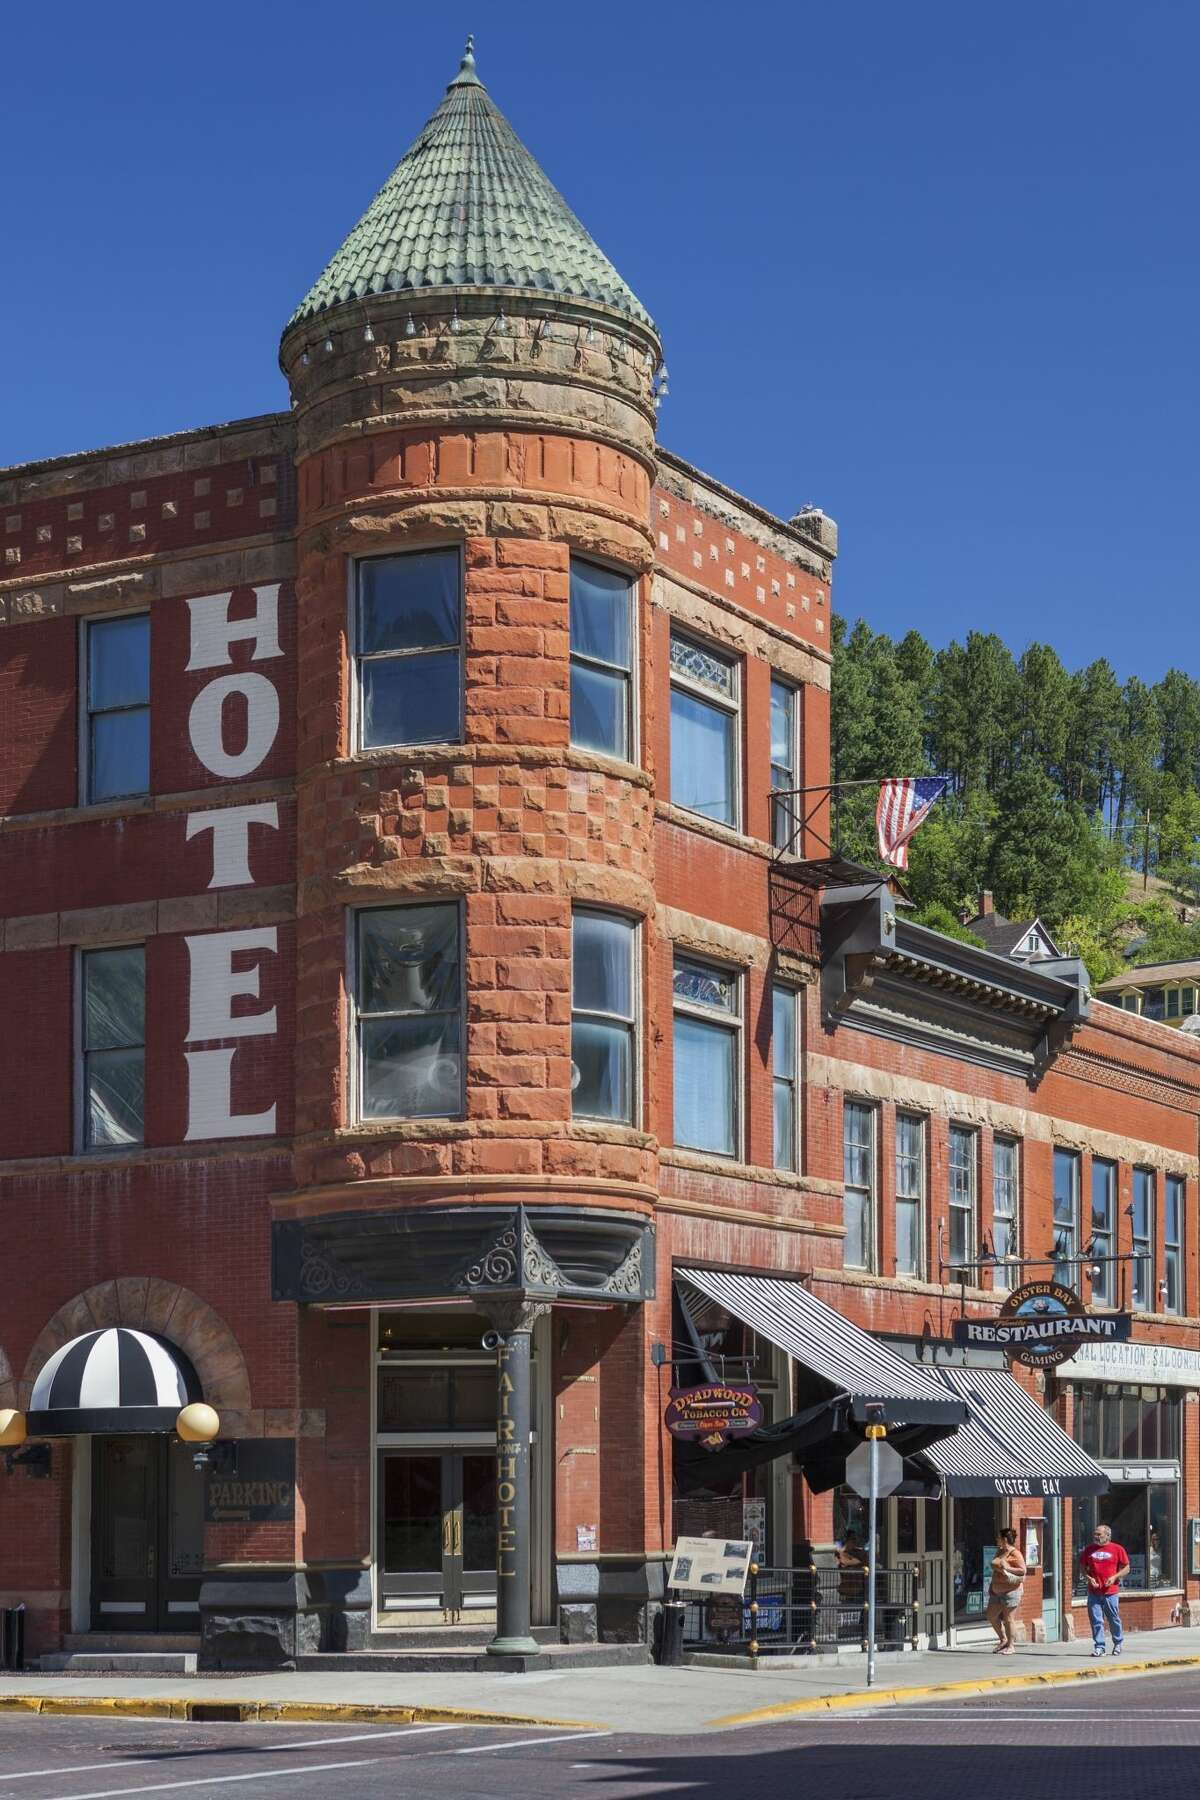 Want more of a taste of the Wild West? Deadwood is a step back in time.